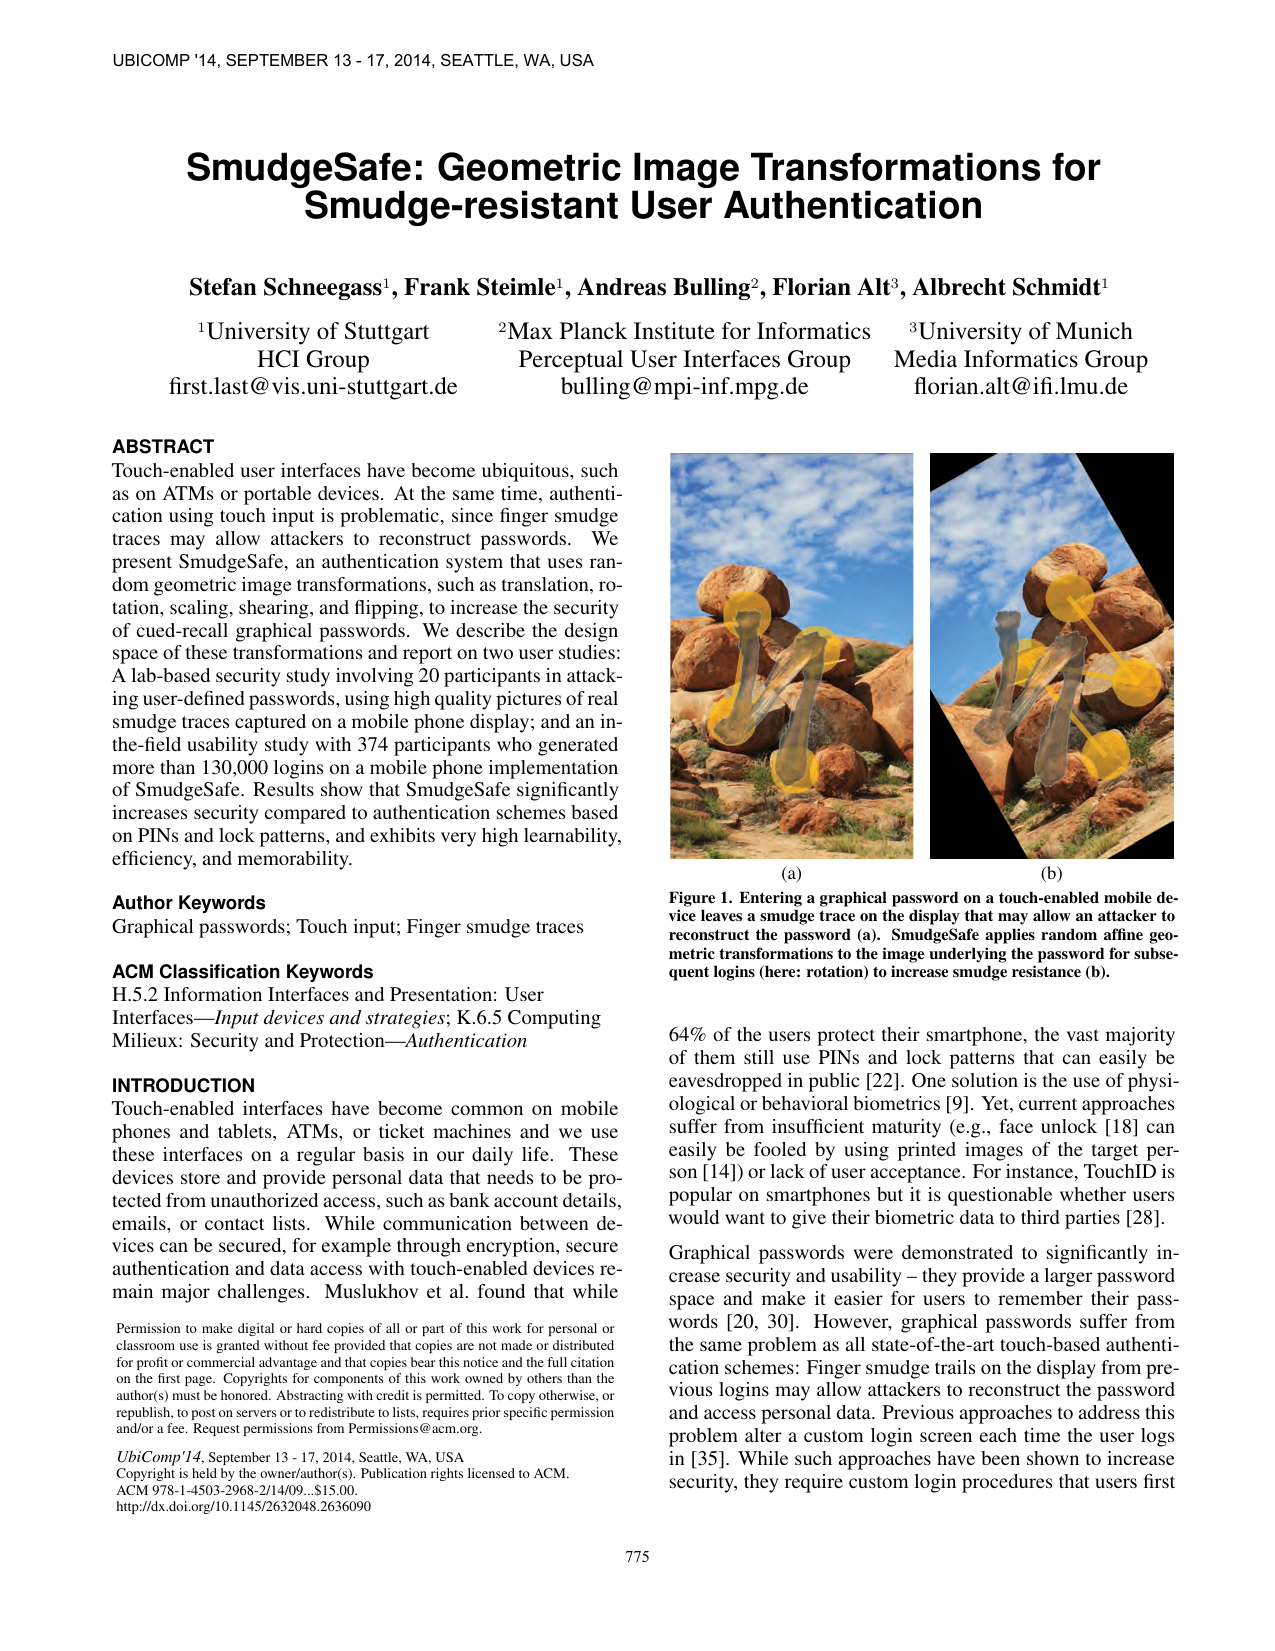 SmudgeSafe: Geometric Image Transformations for Smudge-resistant User Authentication